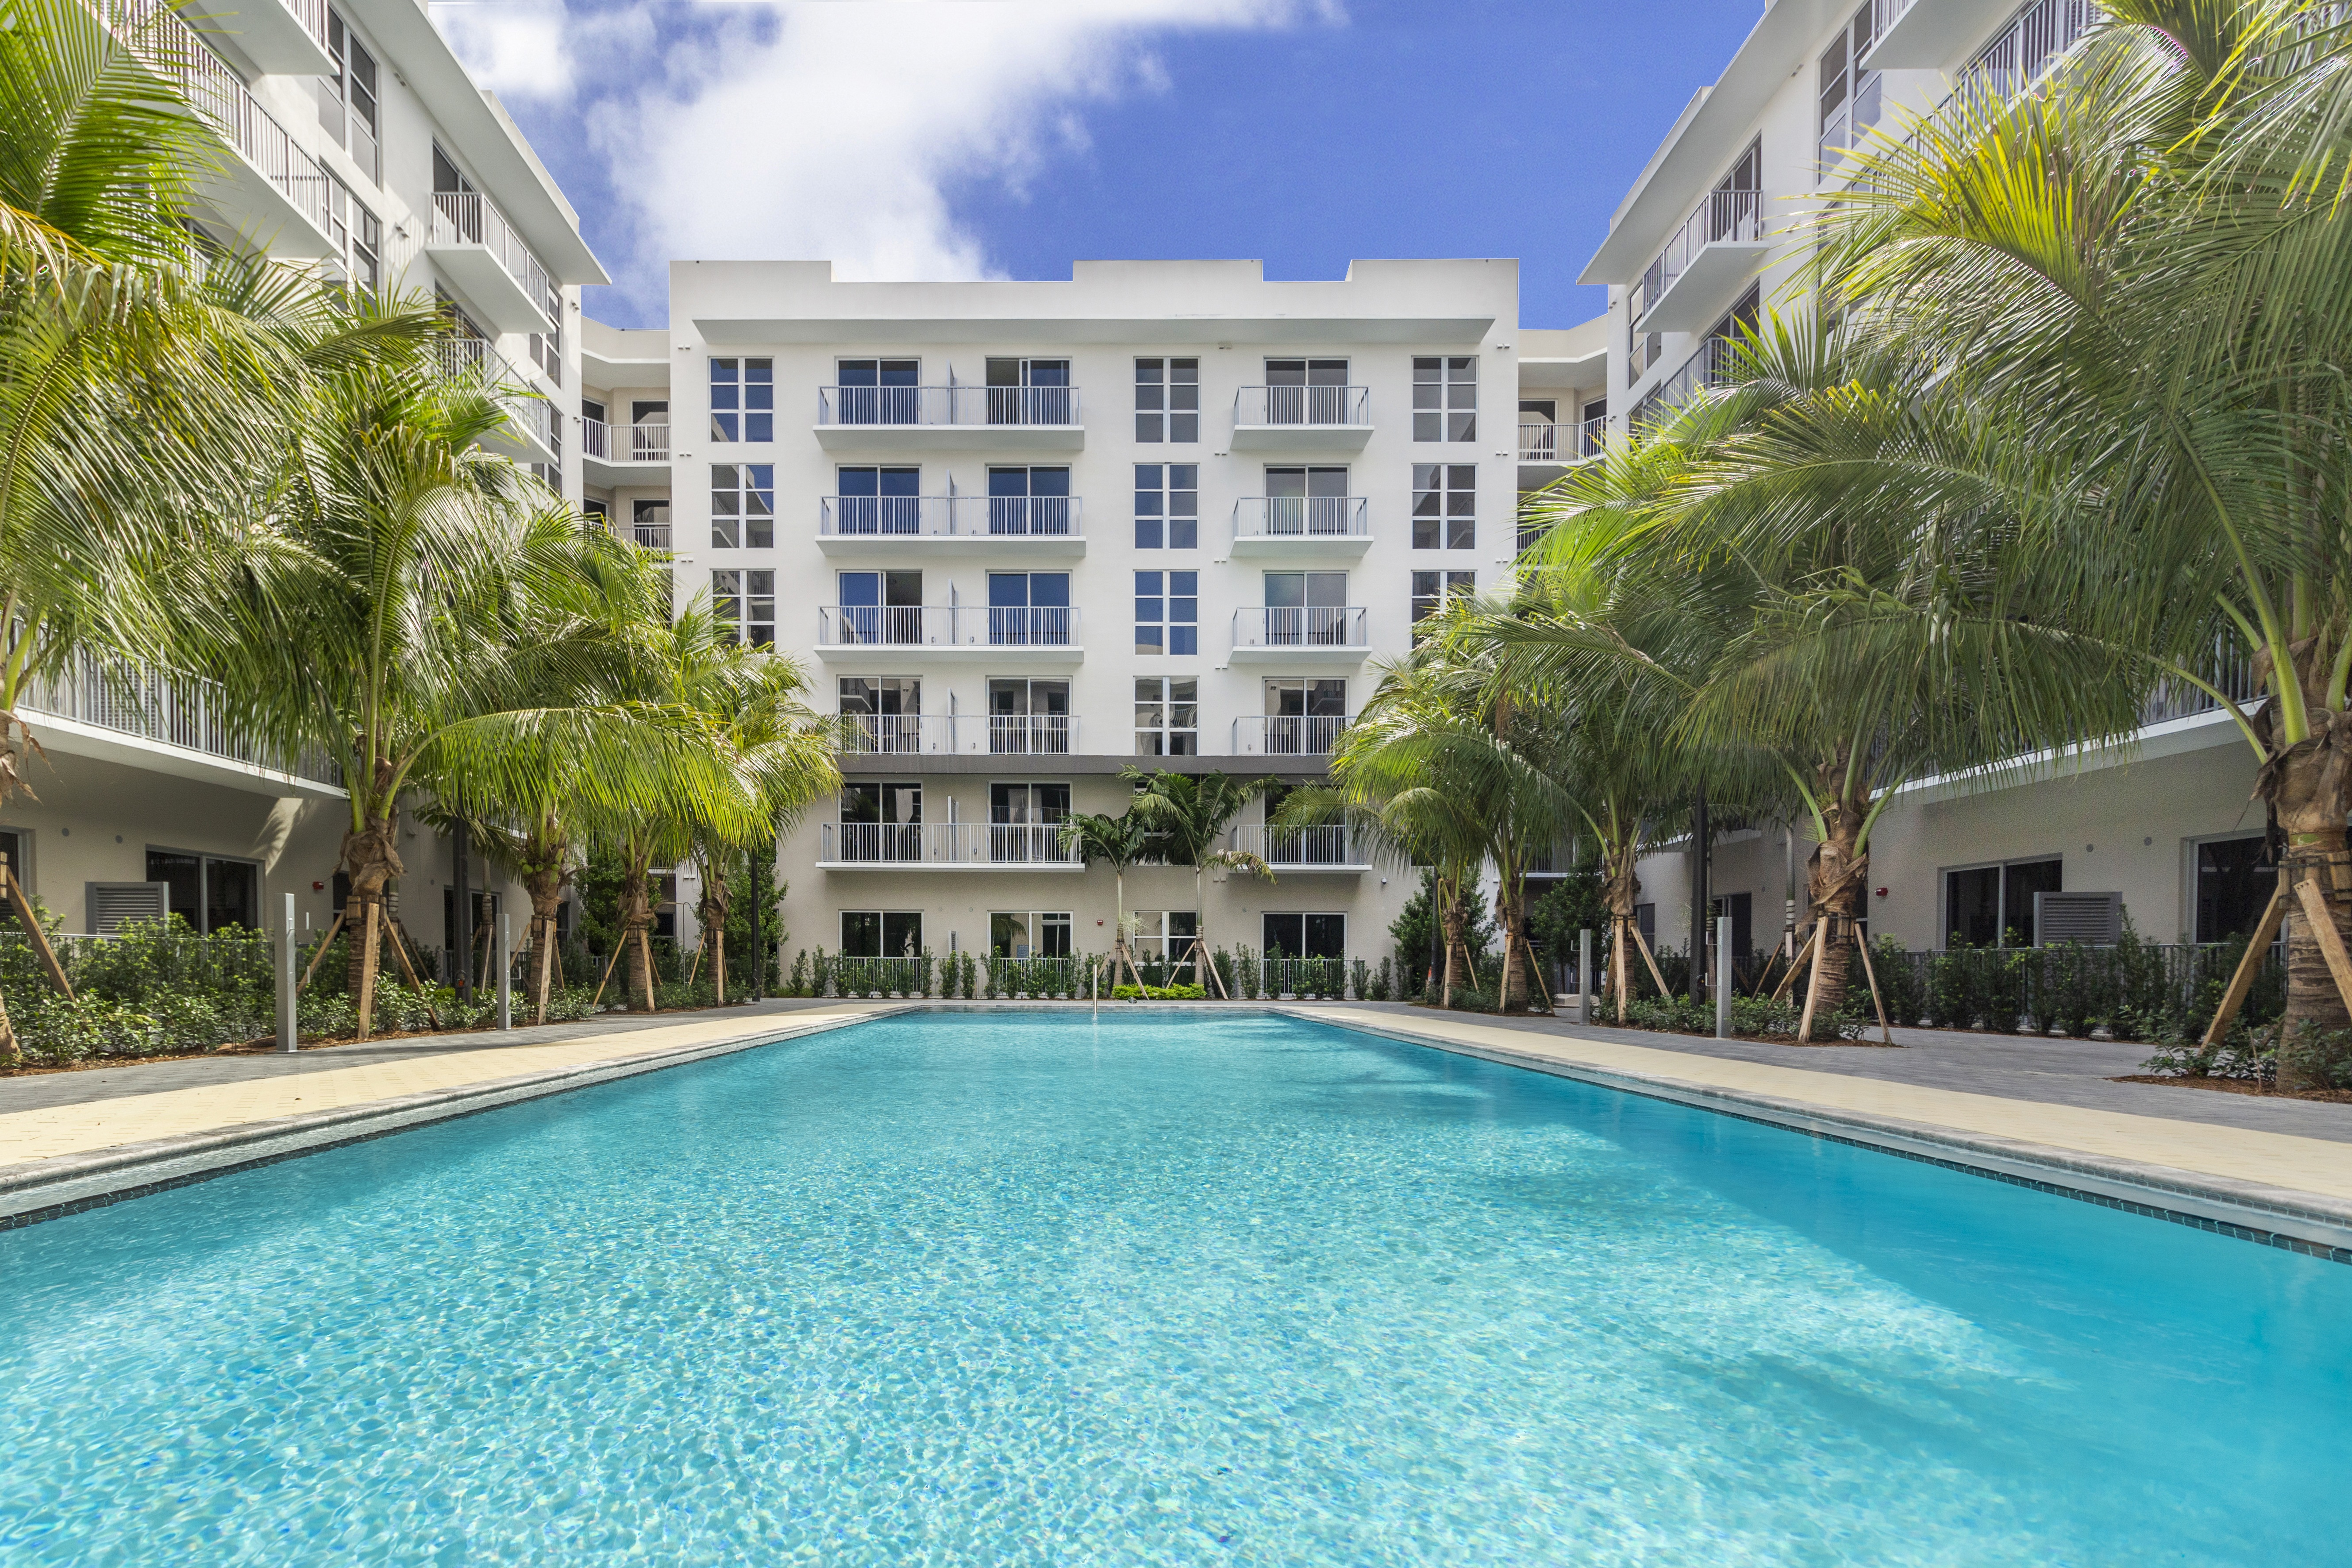 850 Living Miami for rent